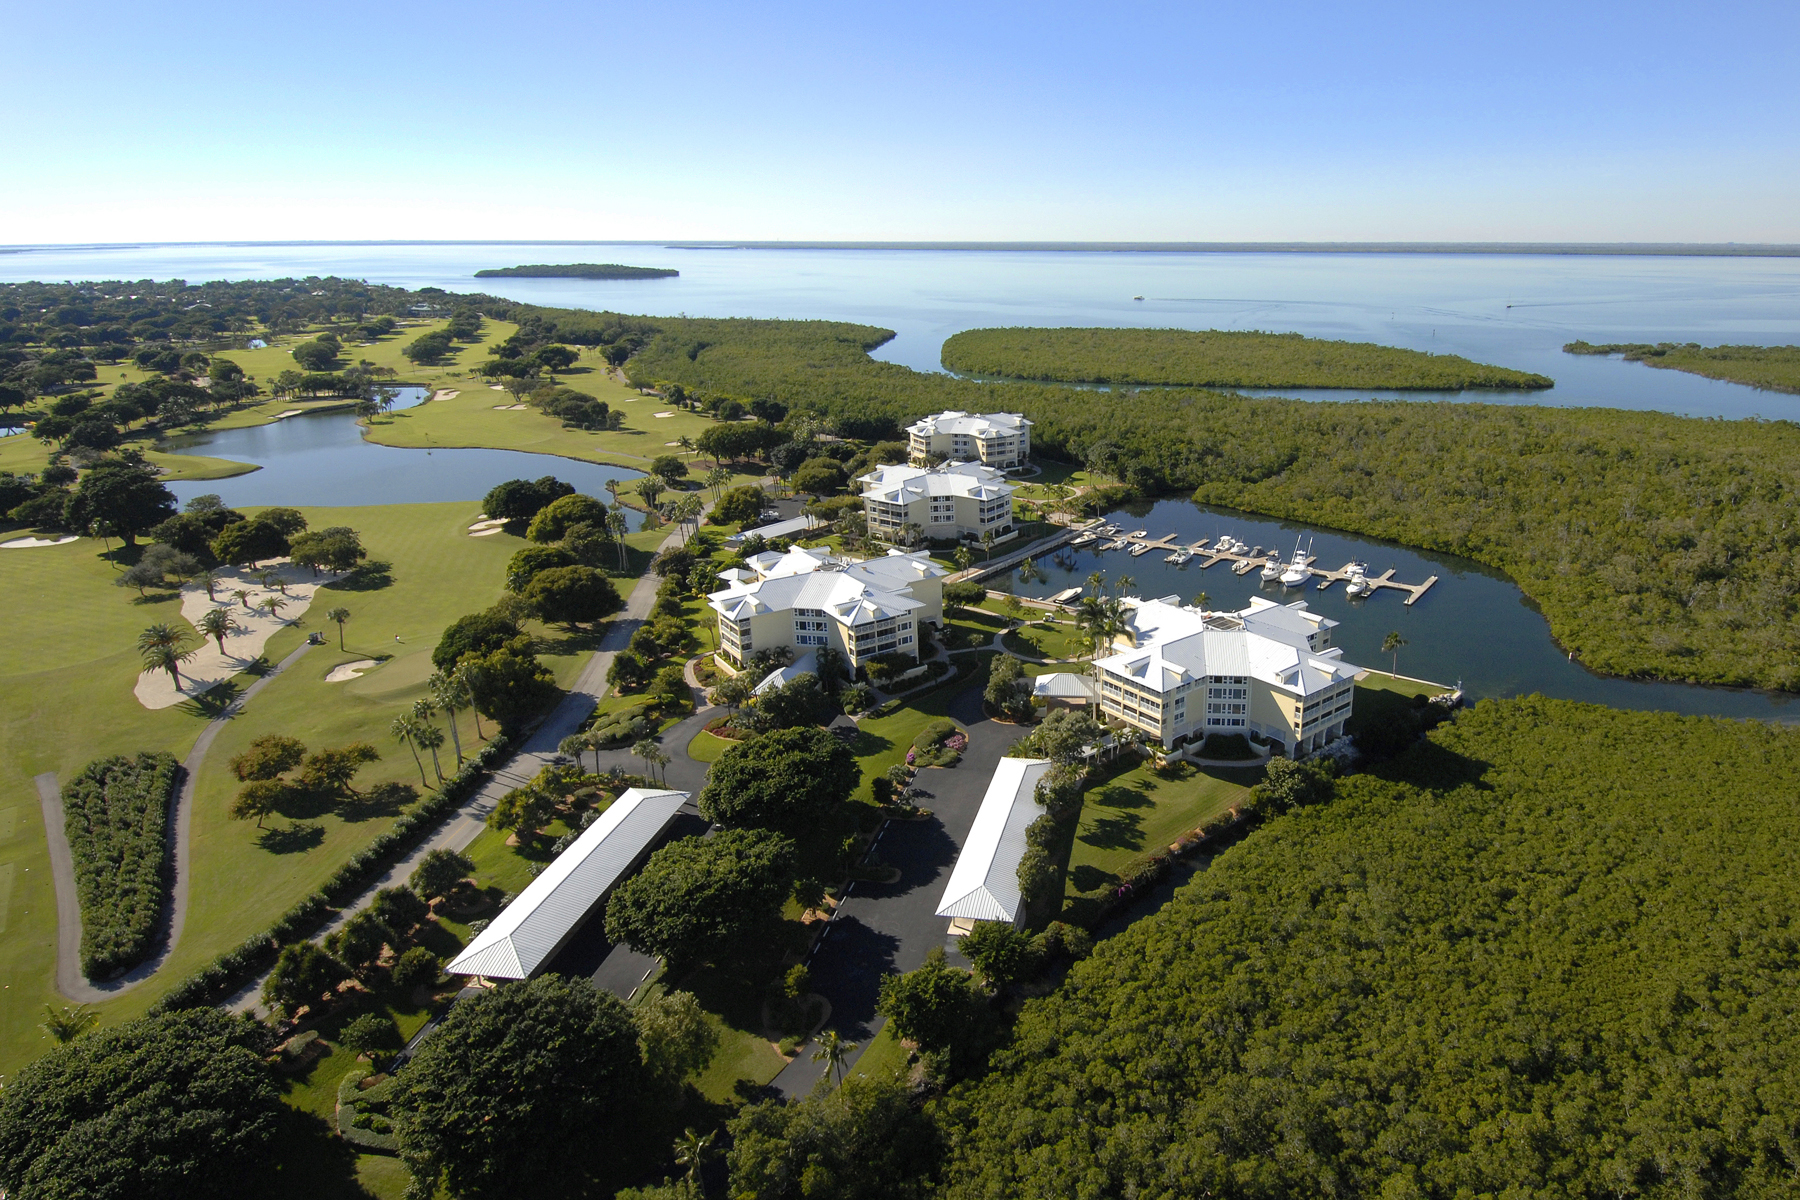 Condominium for Sale at Harbour House Condominium at Ocean Reef 3 Barracuda Lane Ocean Reef Community, Key Largo, Florida, 33037 United States